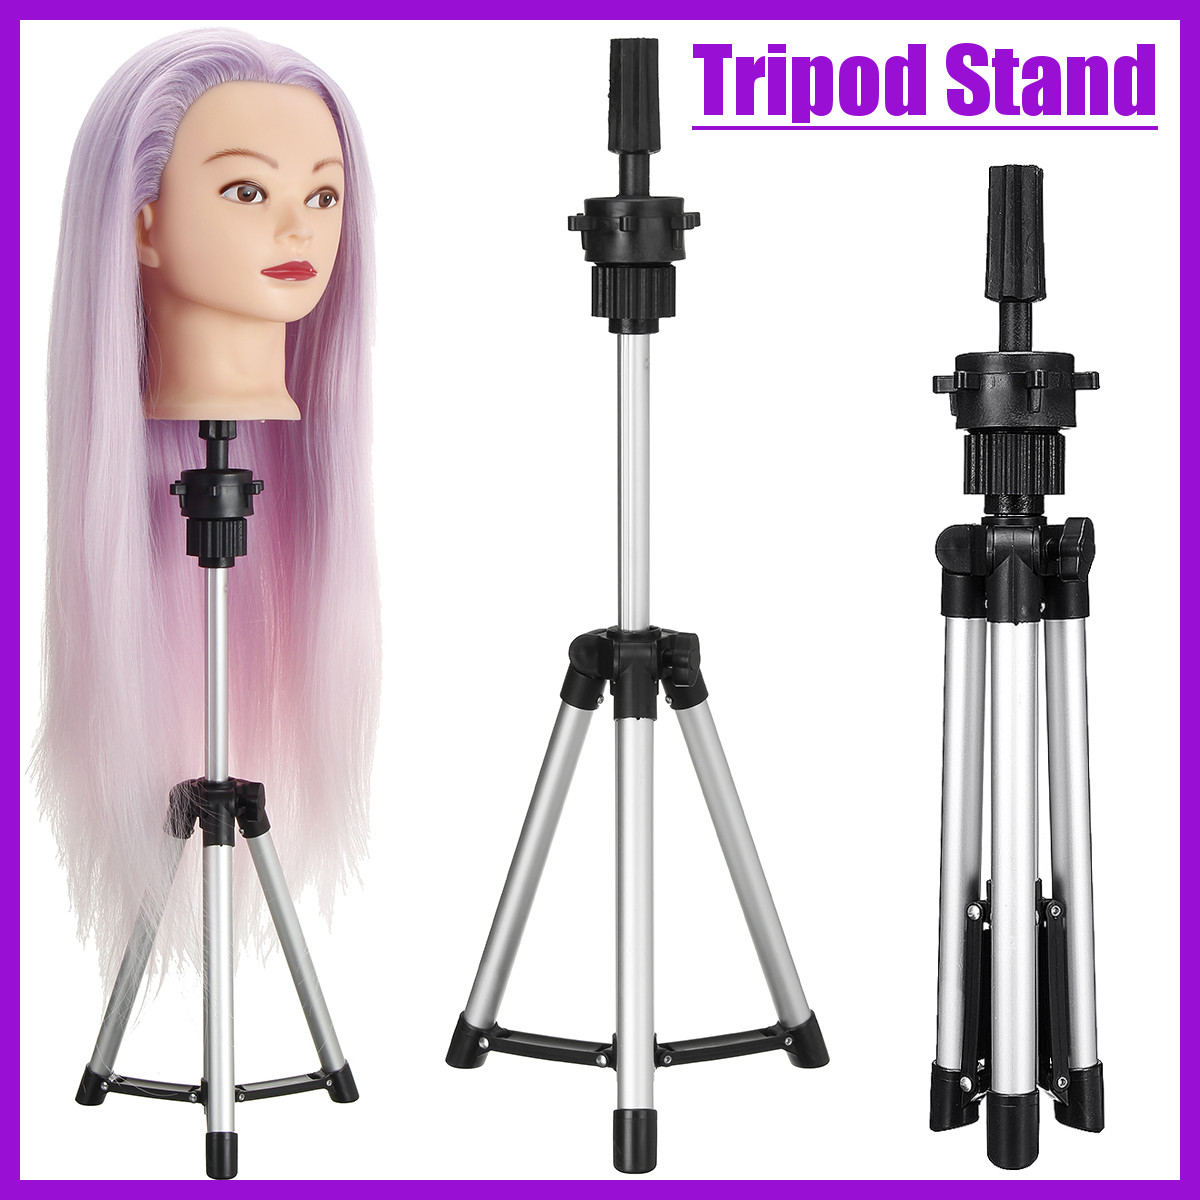 Adjustable Tripod Stand Salon Mannequin Head Wig Hairdressing